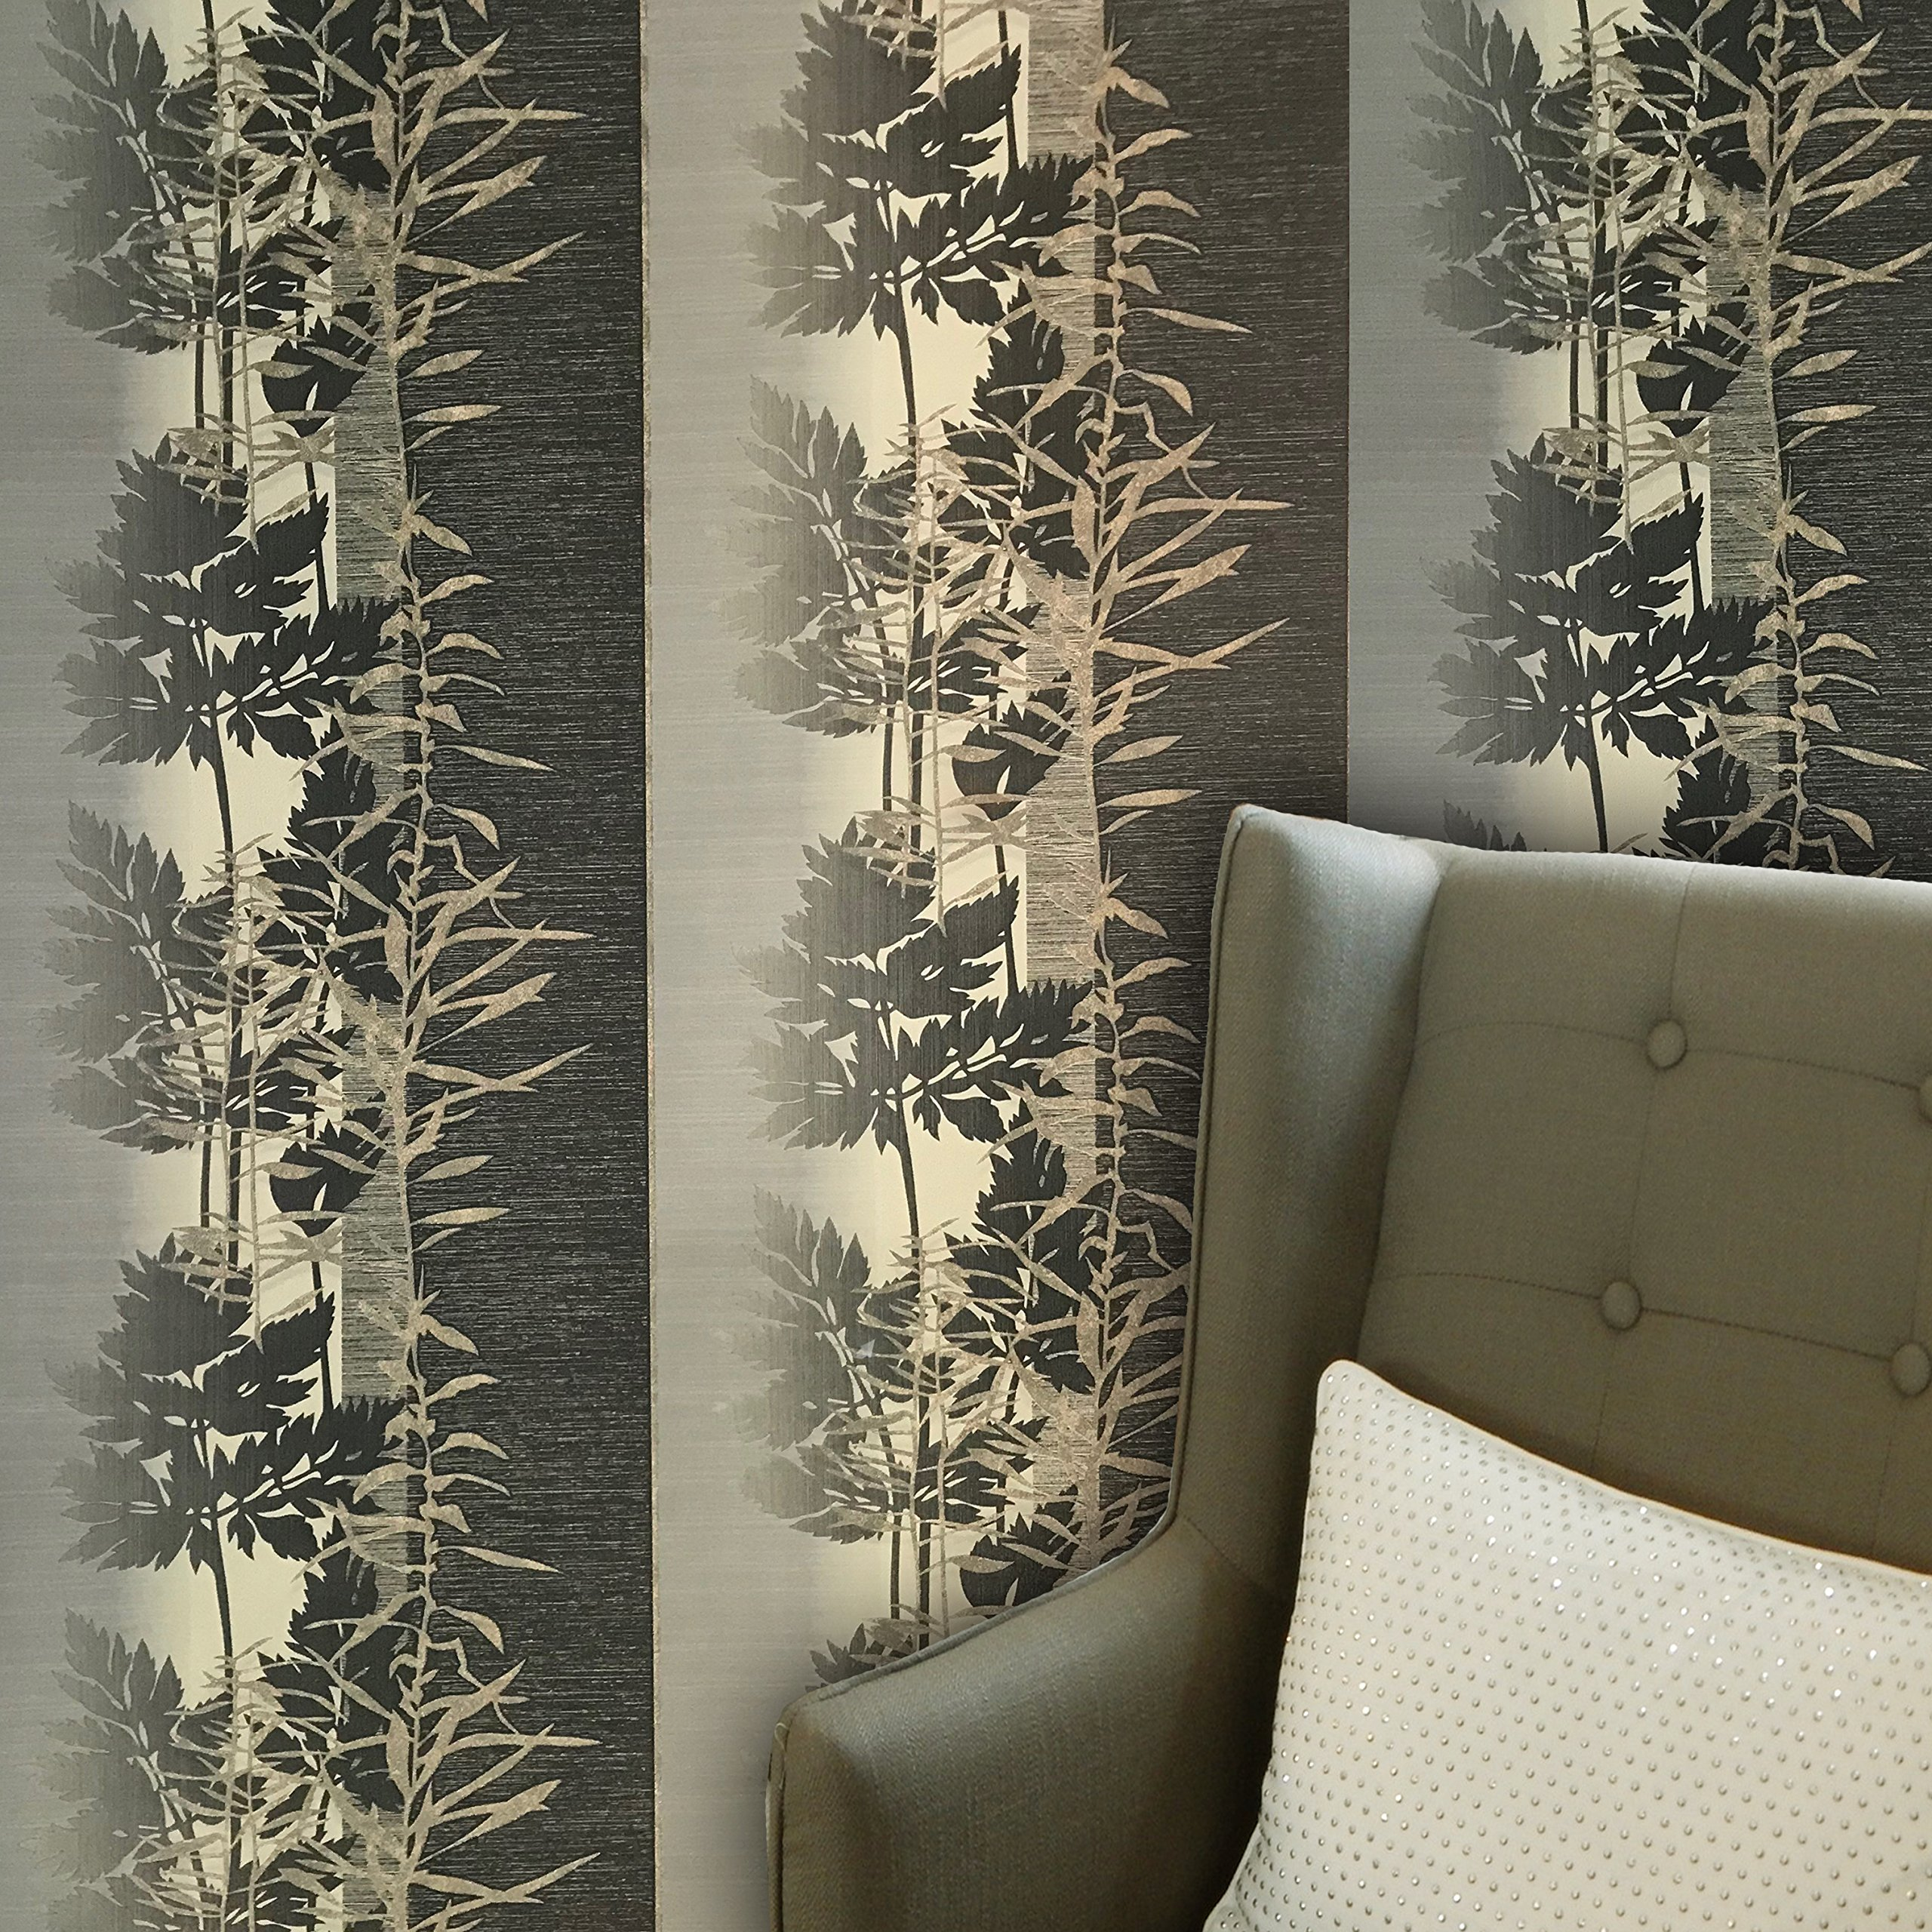 paste the wall only Embossed modern Slavyanski wallcoverings rolls floral forest trees tree pattern Vinyl Non-Woven Wallpaper grey beige gray bronze gold metallic green hue textured striped stripes 3D by Slavyanski